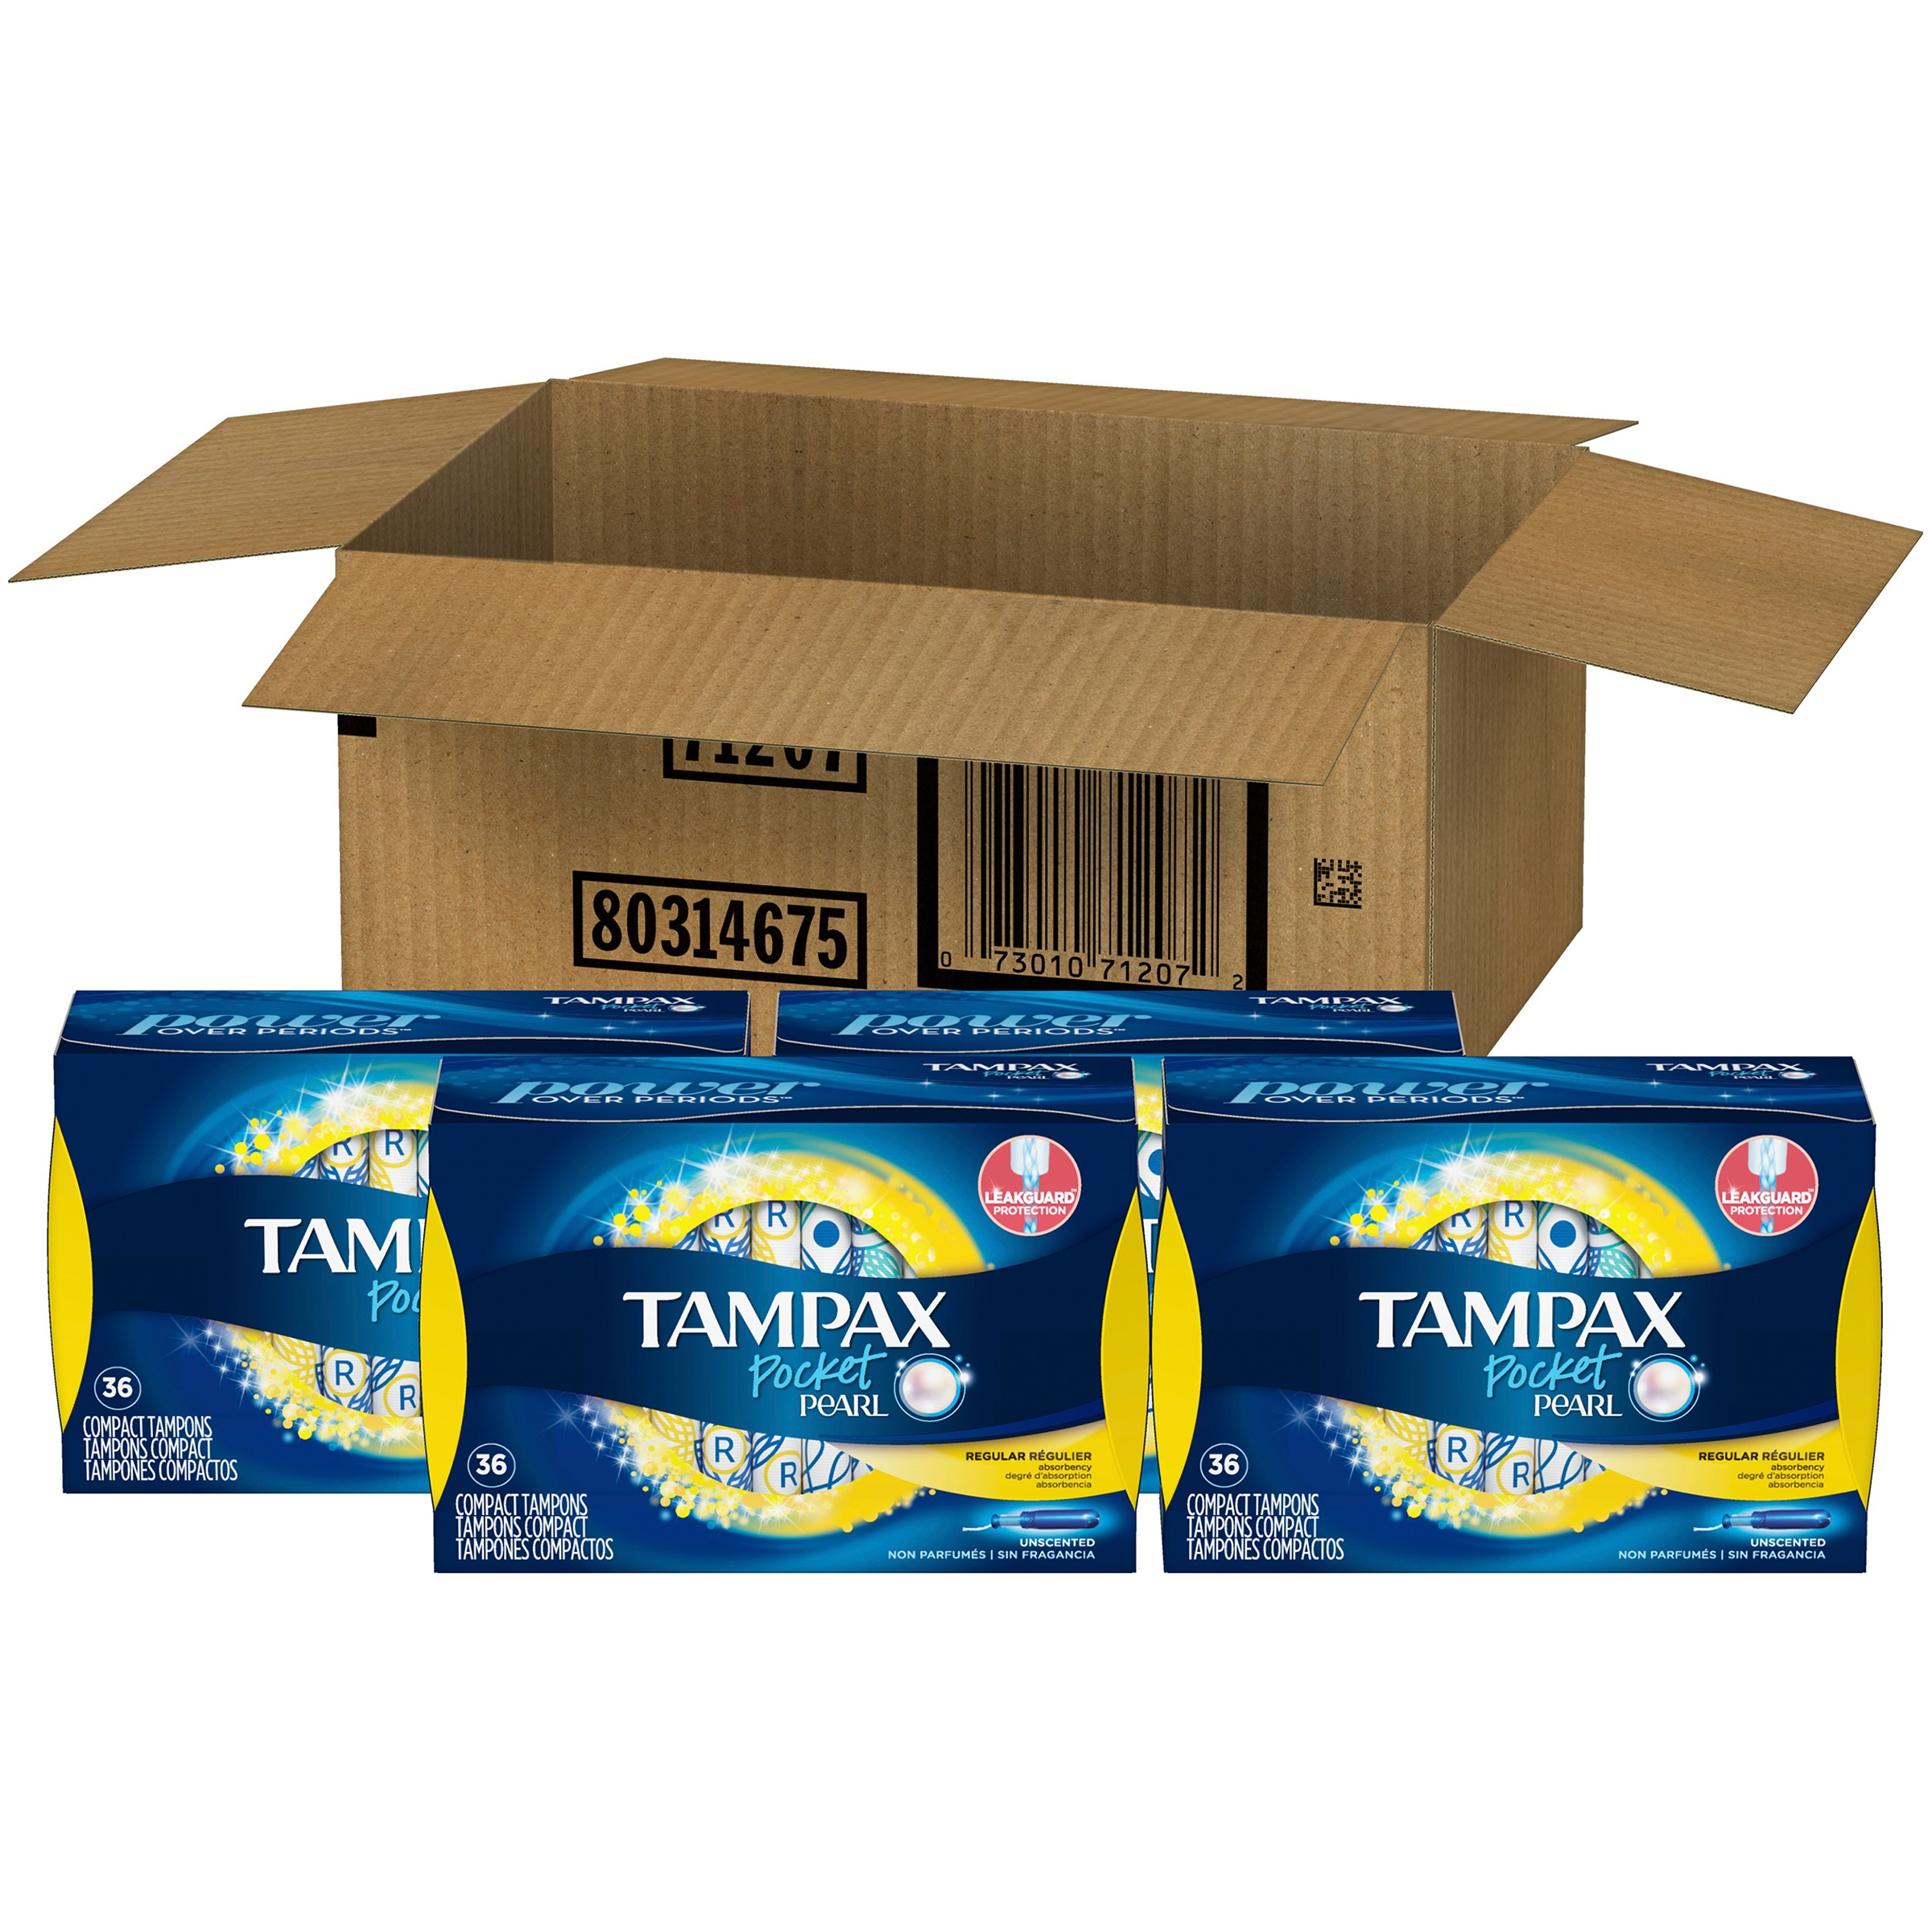 Tampax Pocket Pearl Plastic Tampons, Regular Absorbency, Unscented, 144 Ct